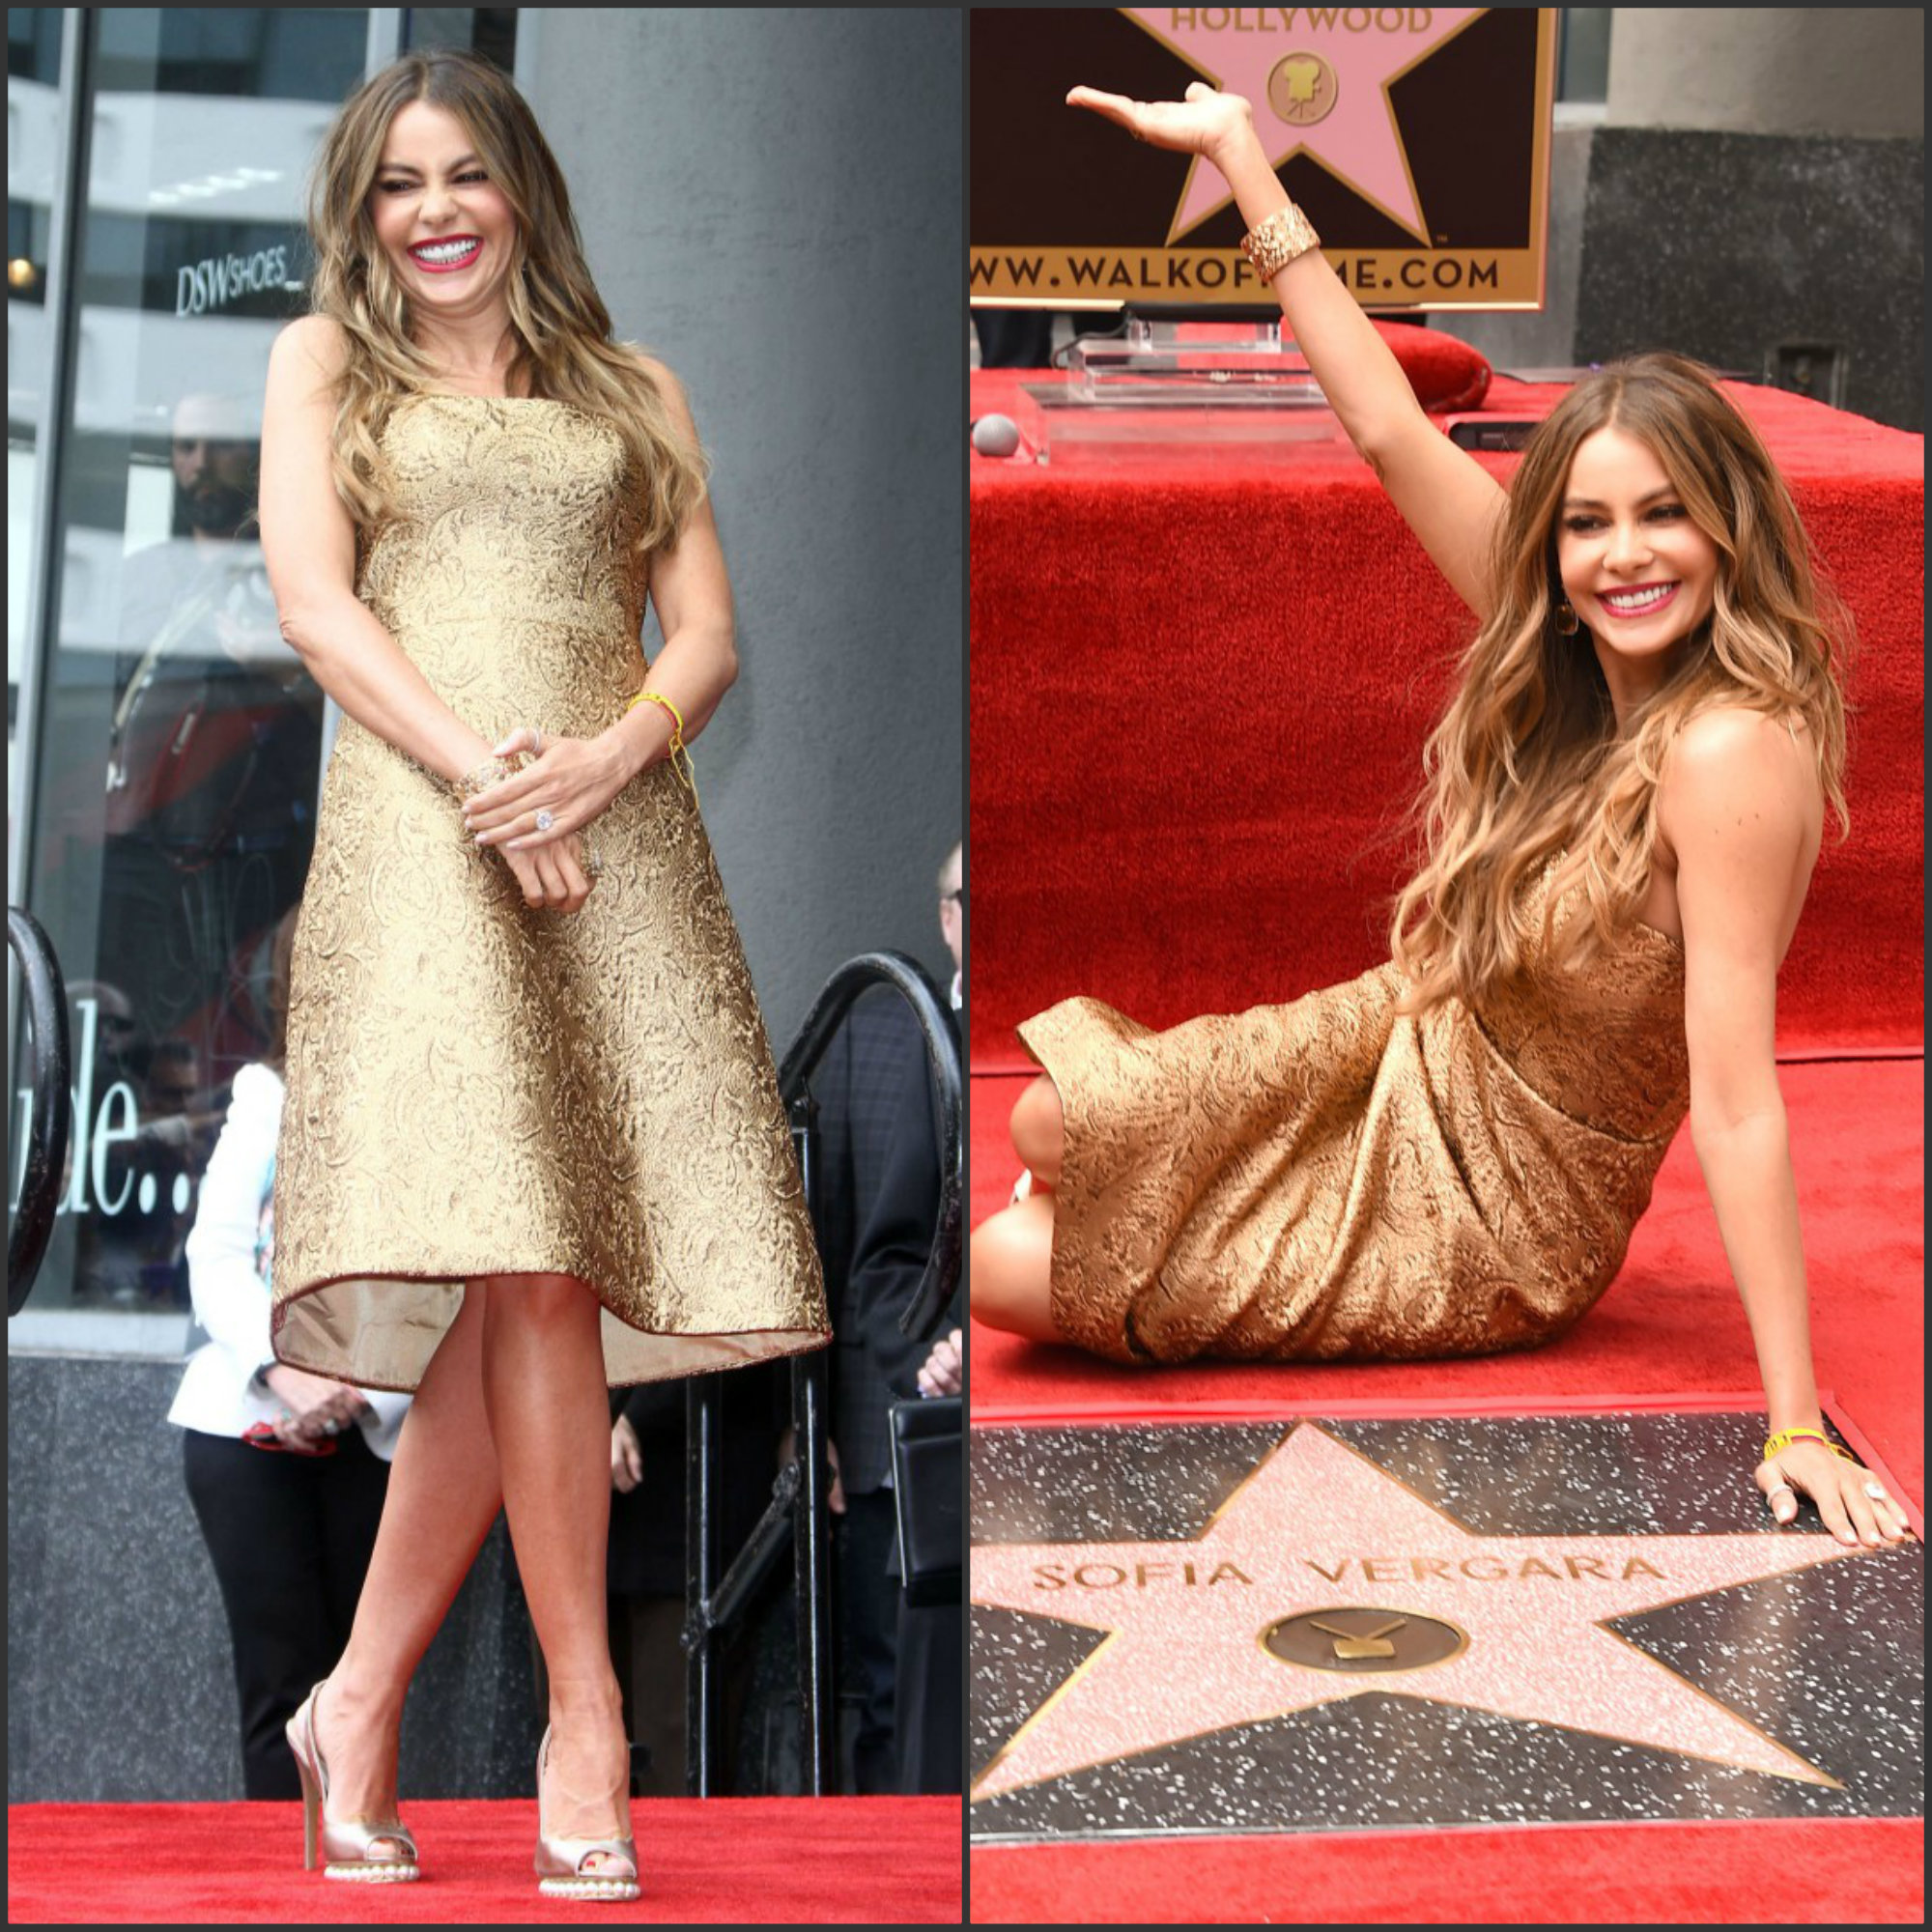 sofia-vergara-in-romona-keveza-at-the-hollywood-walk-of-fame-ceremony